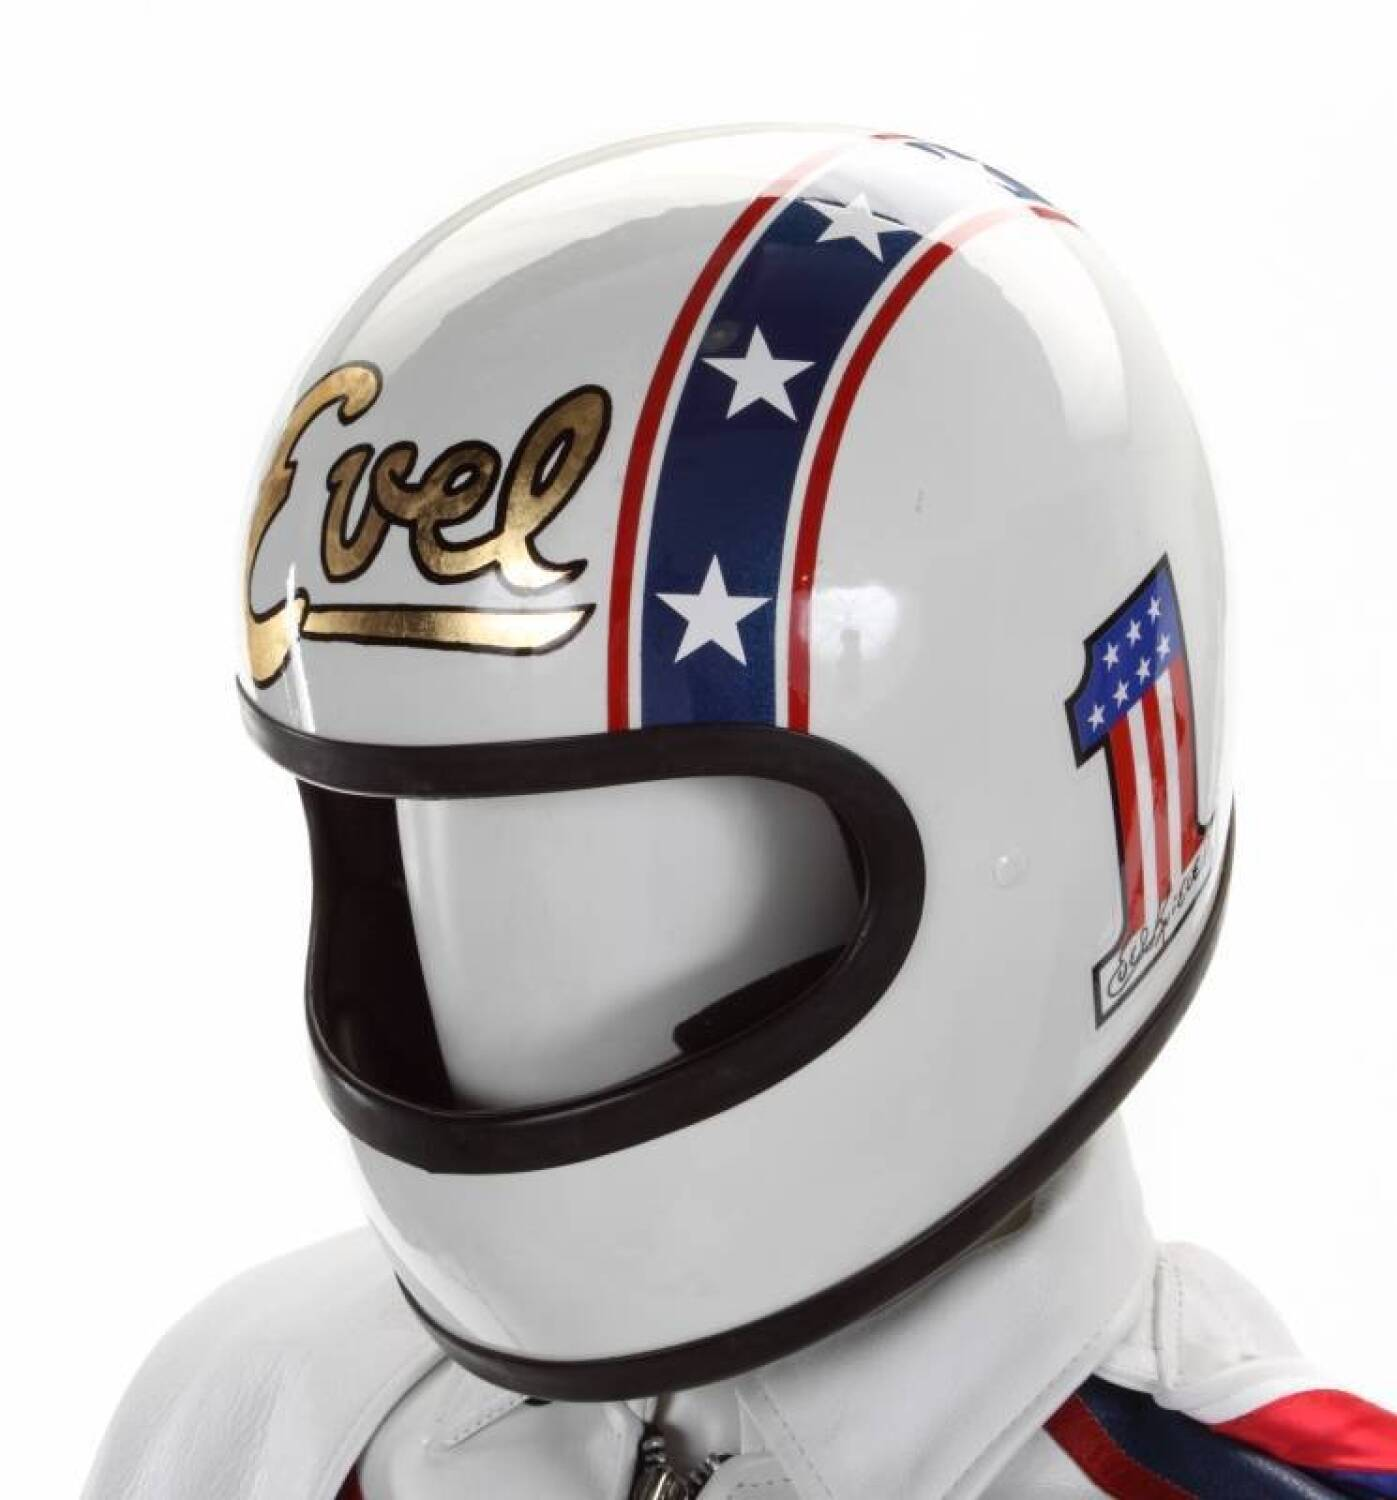 Motorcycle Helmets For Sale >> EVEL KNIEVEL SIGNED SUIT - Current price: $3750